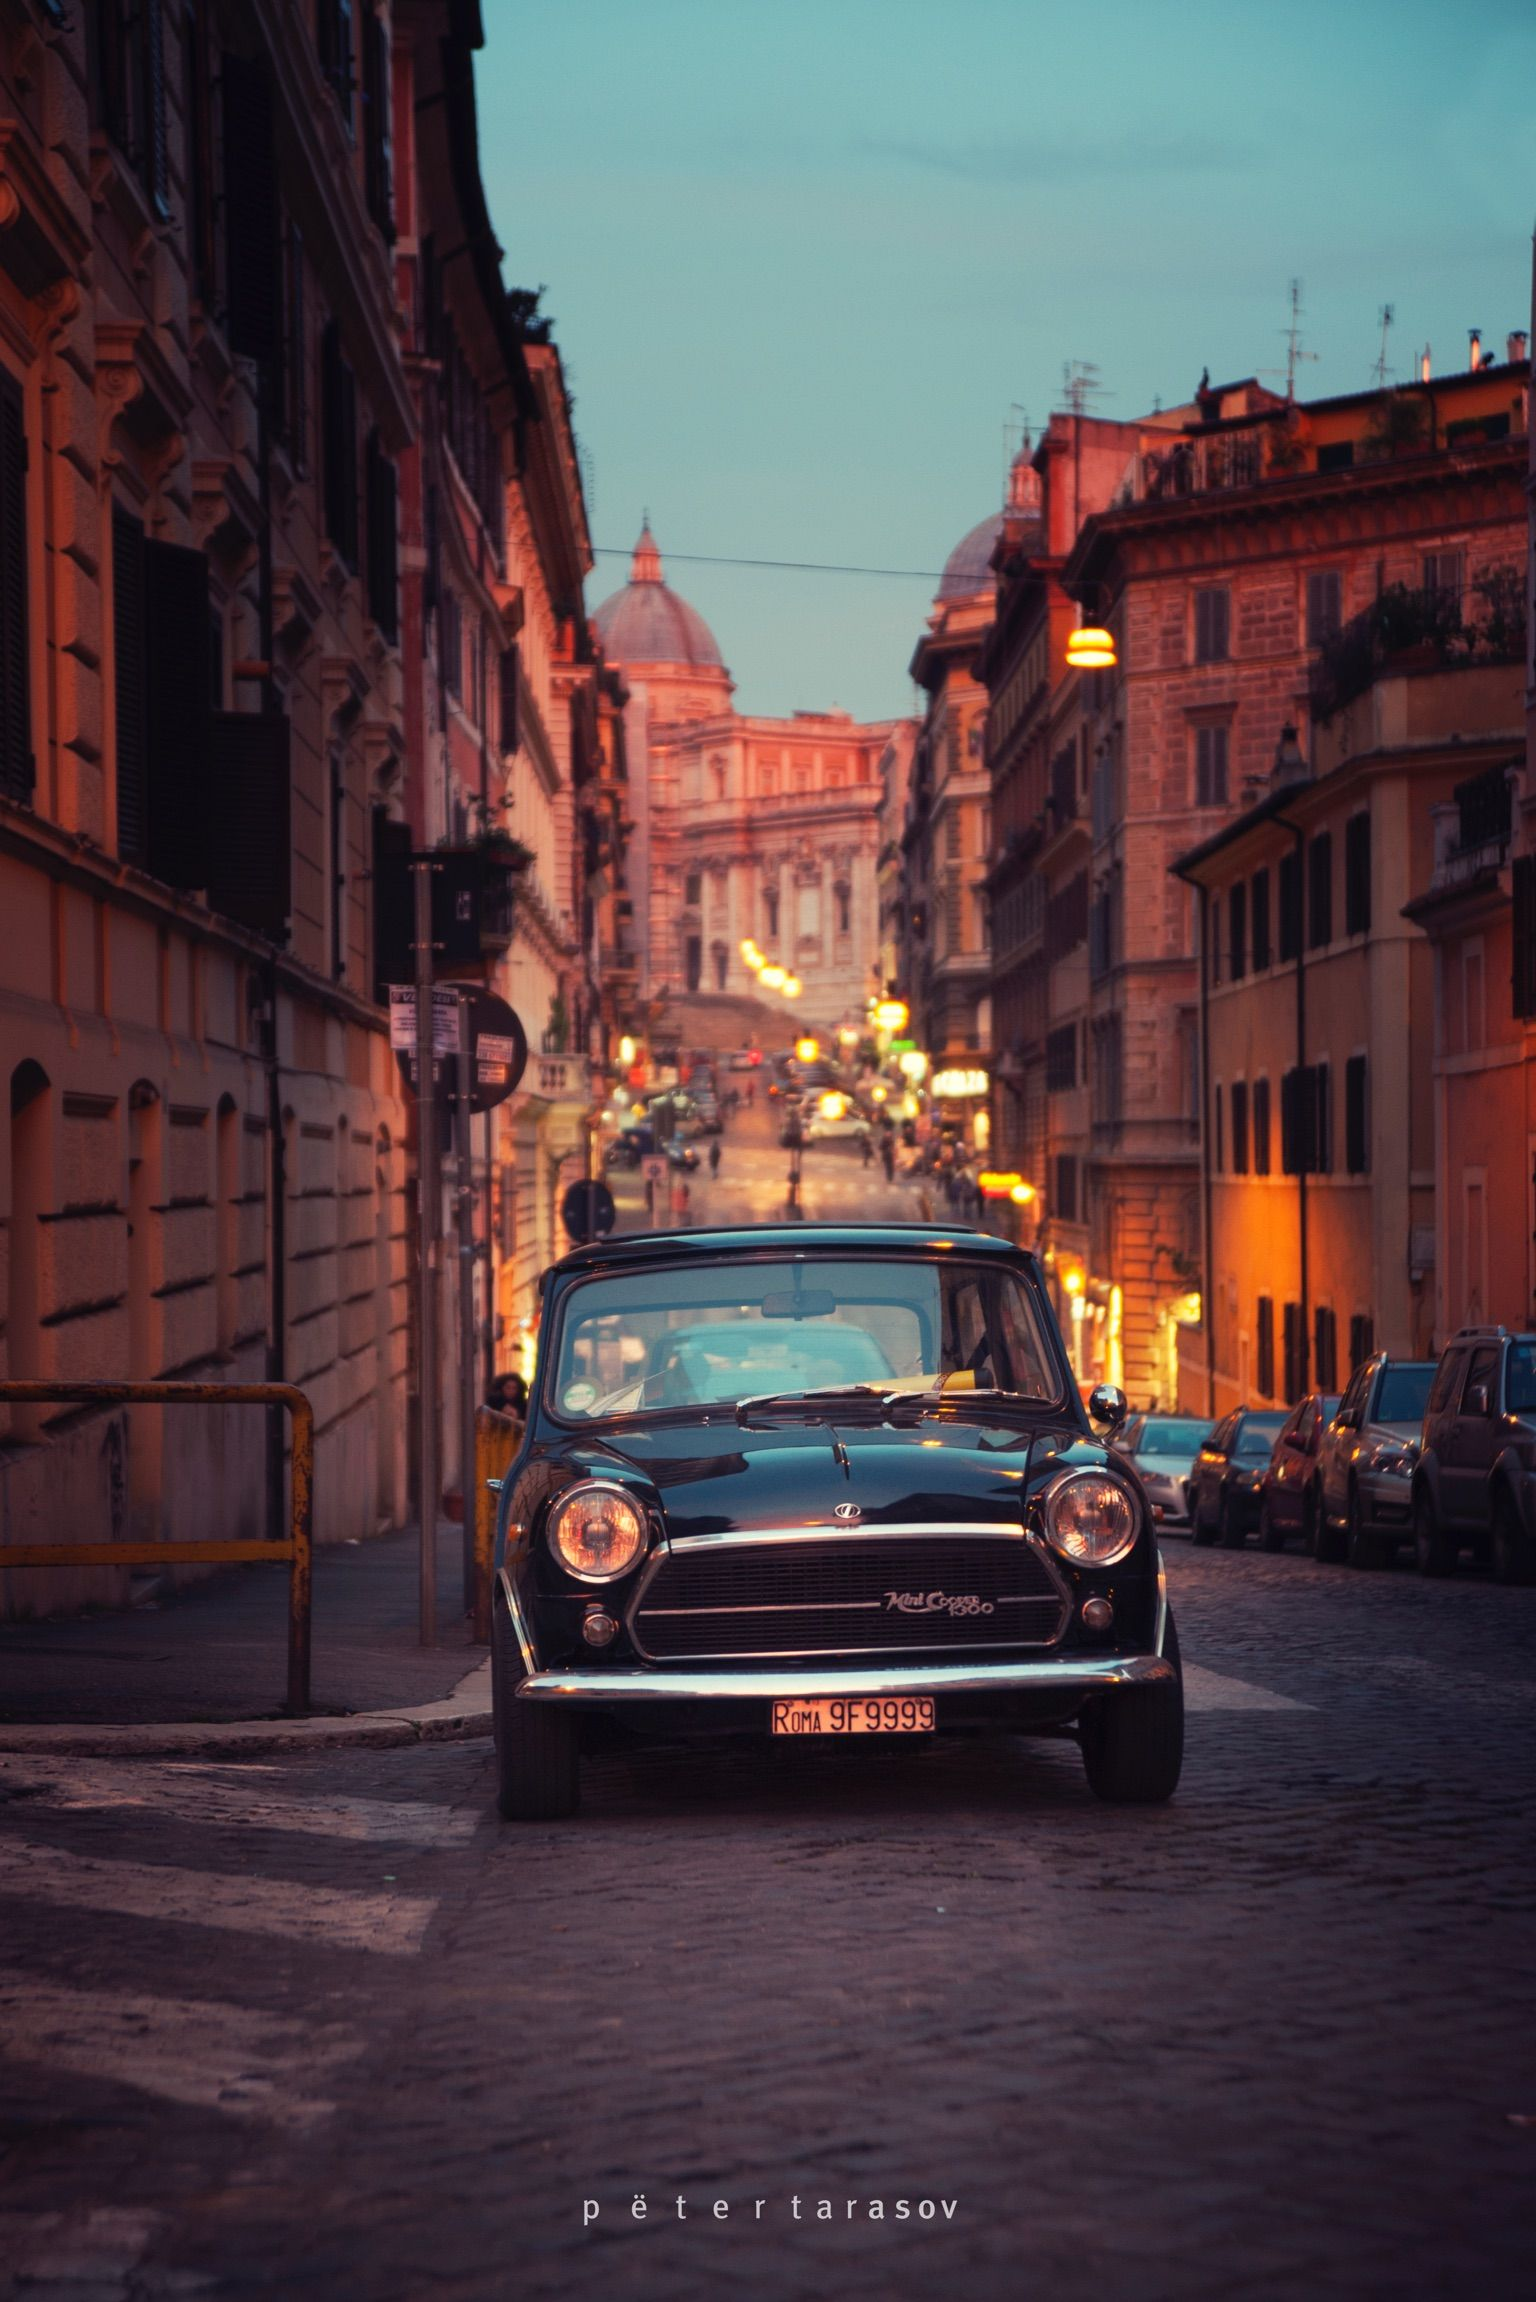 Wallpaper Car Vintage Old Fashioned Street Car Backgrounds City Wallpaper Car Wallpapers